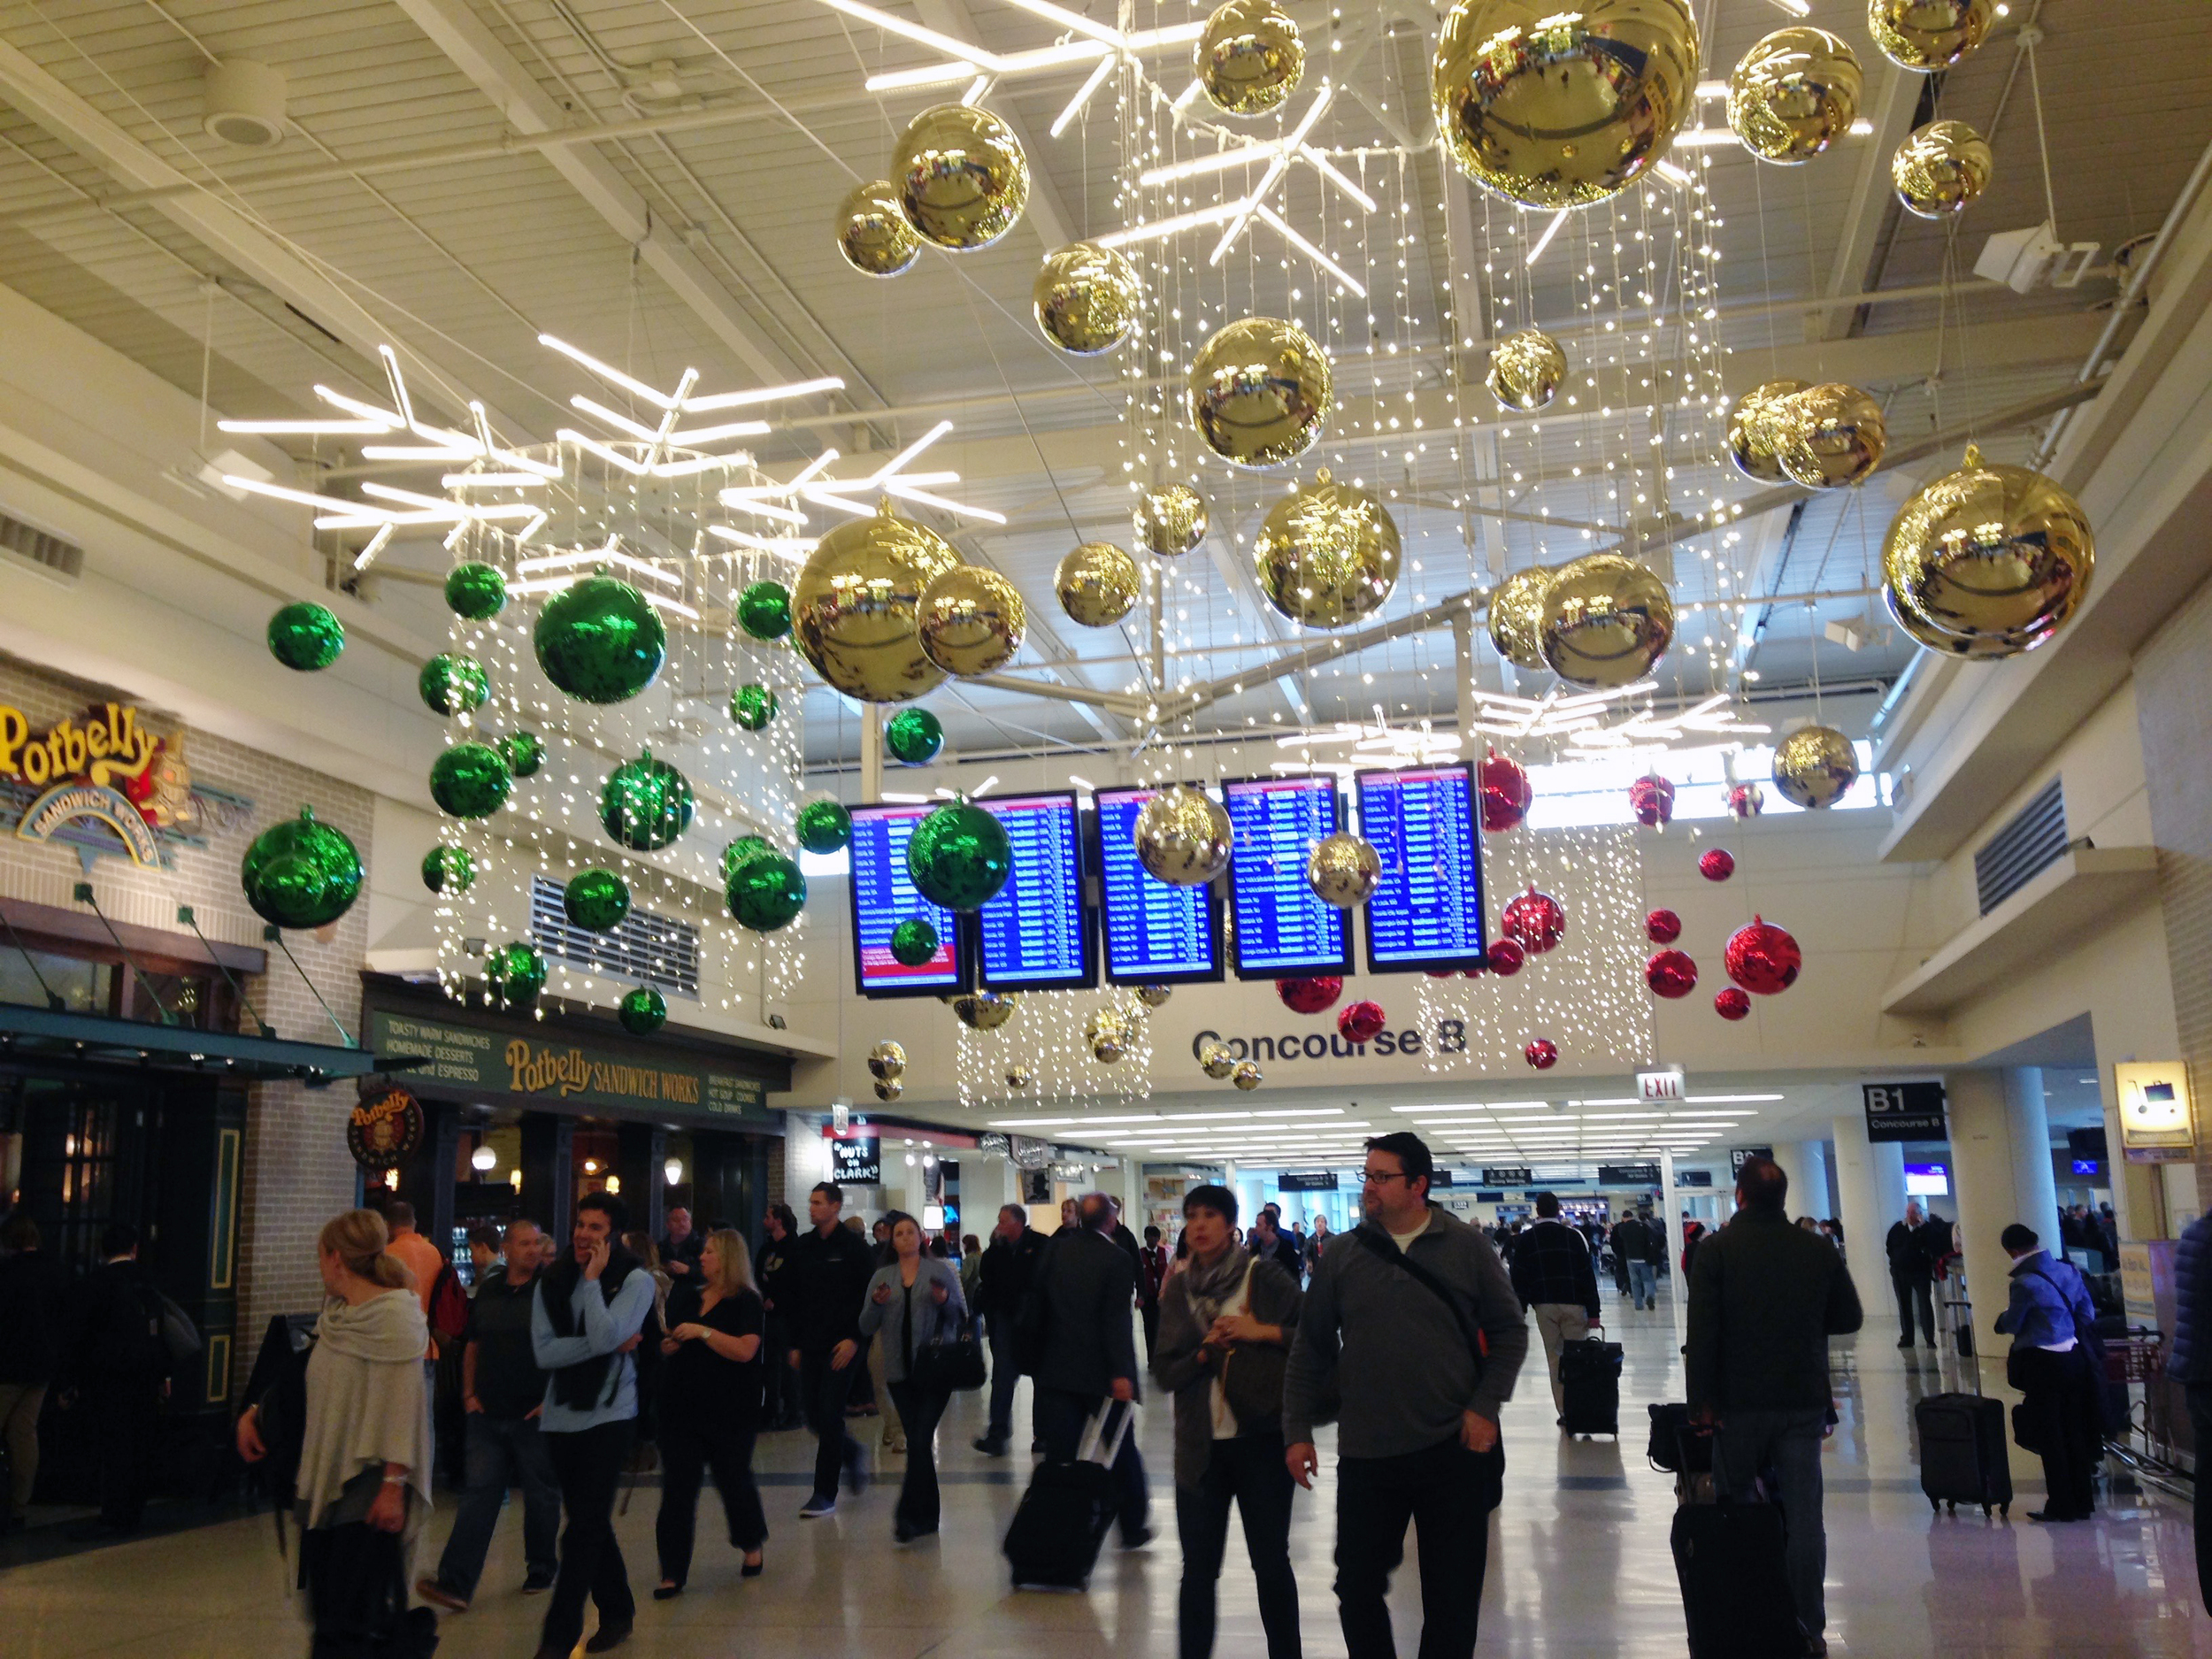 Midway Airport all decked out for Christmas.